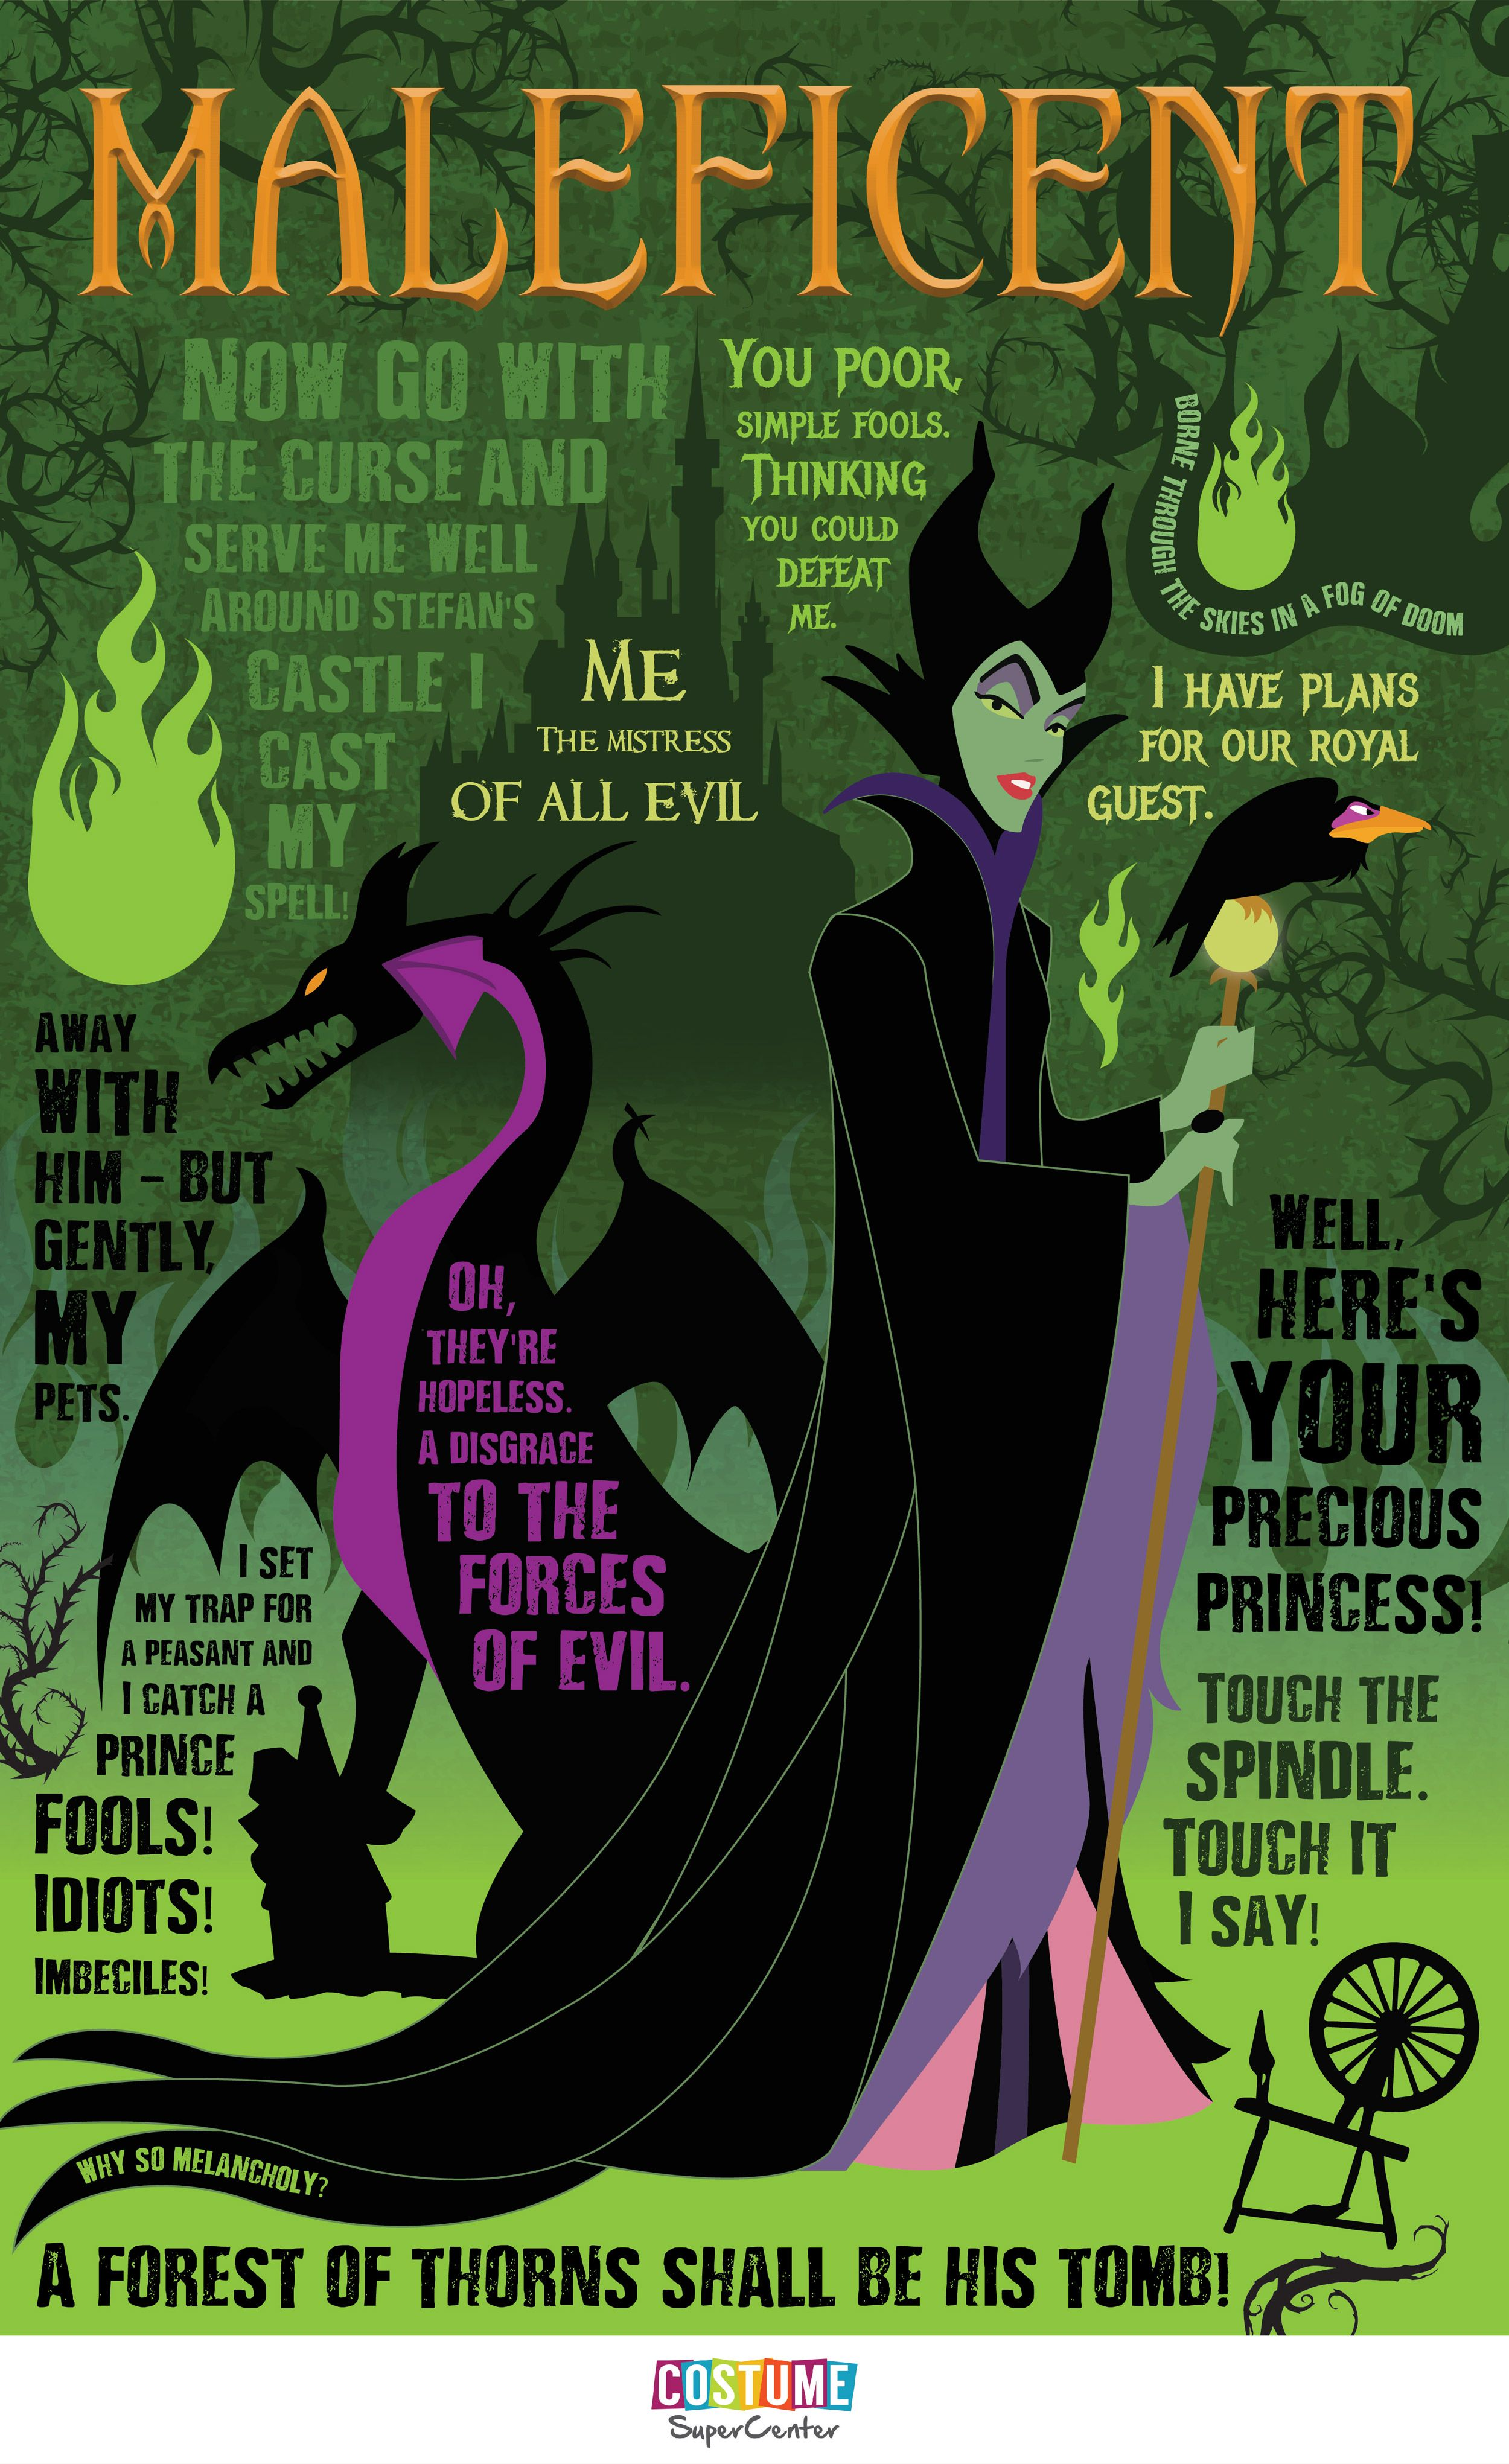 The Mistress of All Evil Maleficent Quotable [Infographic